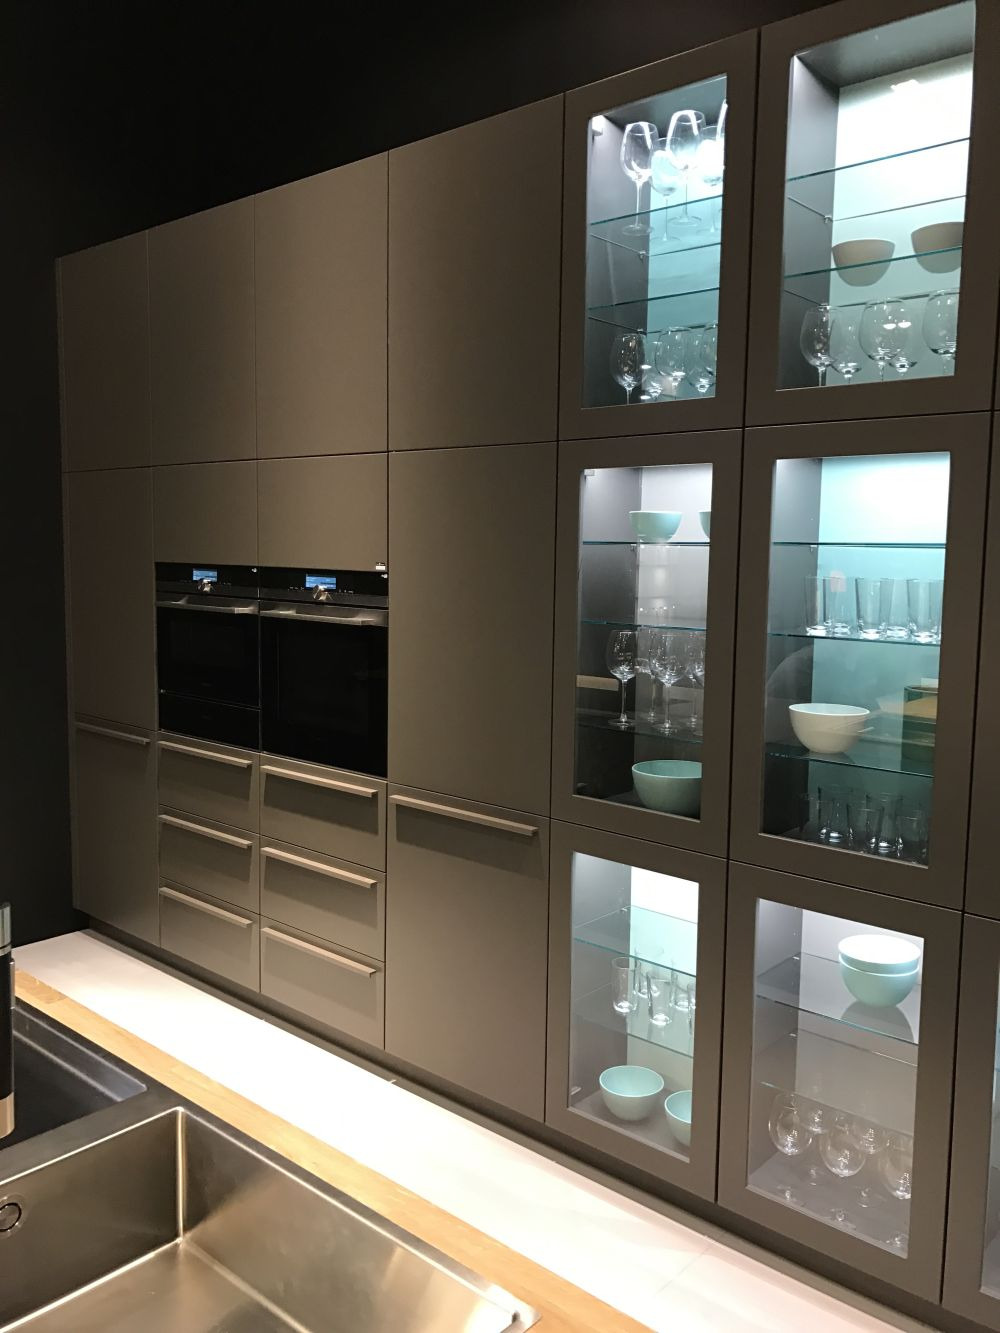 full wall kitchen cabinets in grey with built in appliances and clear glass doors led lighting behind